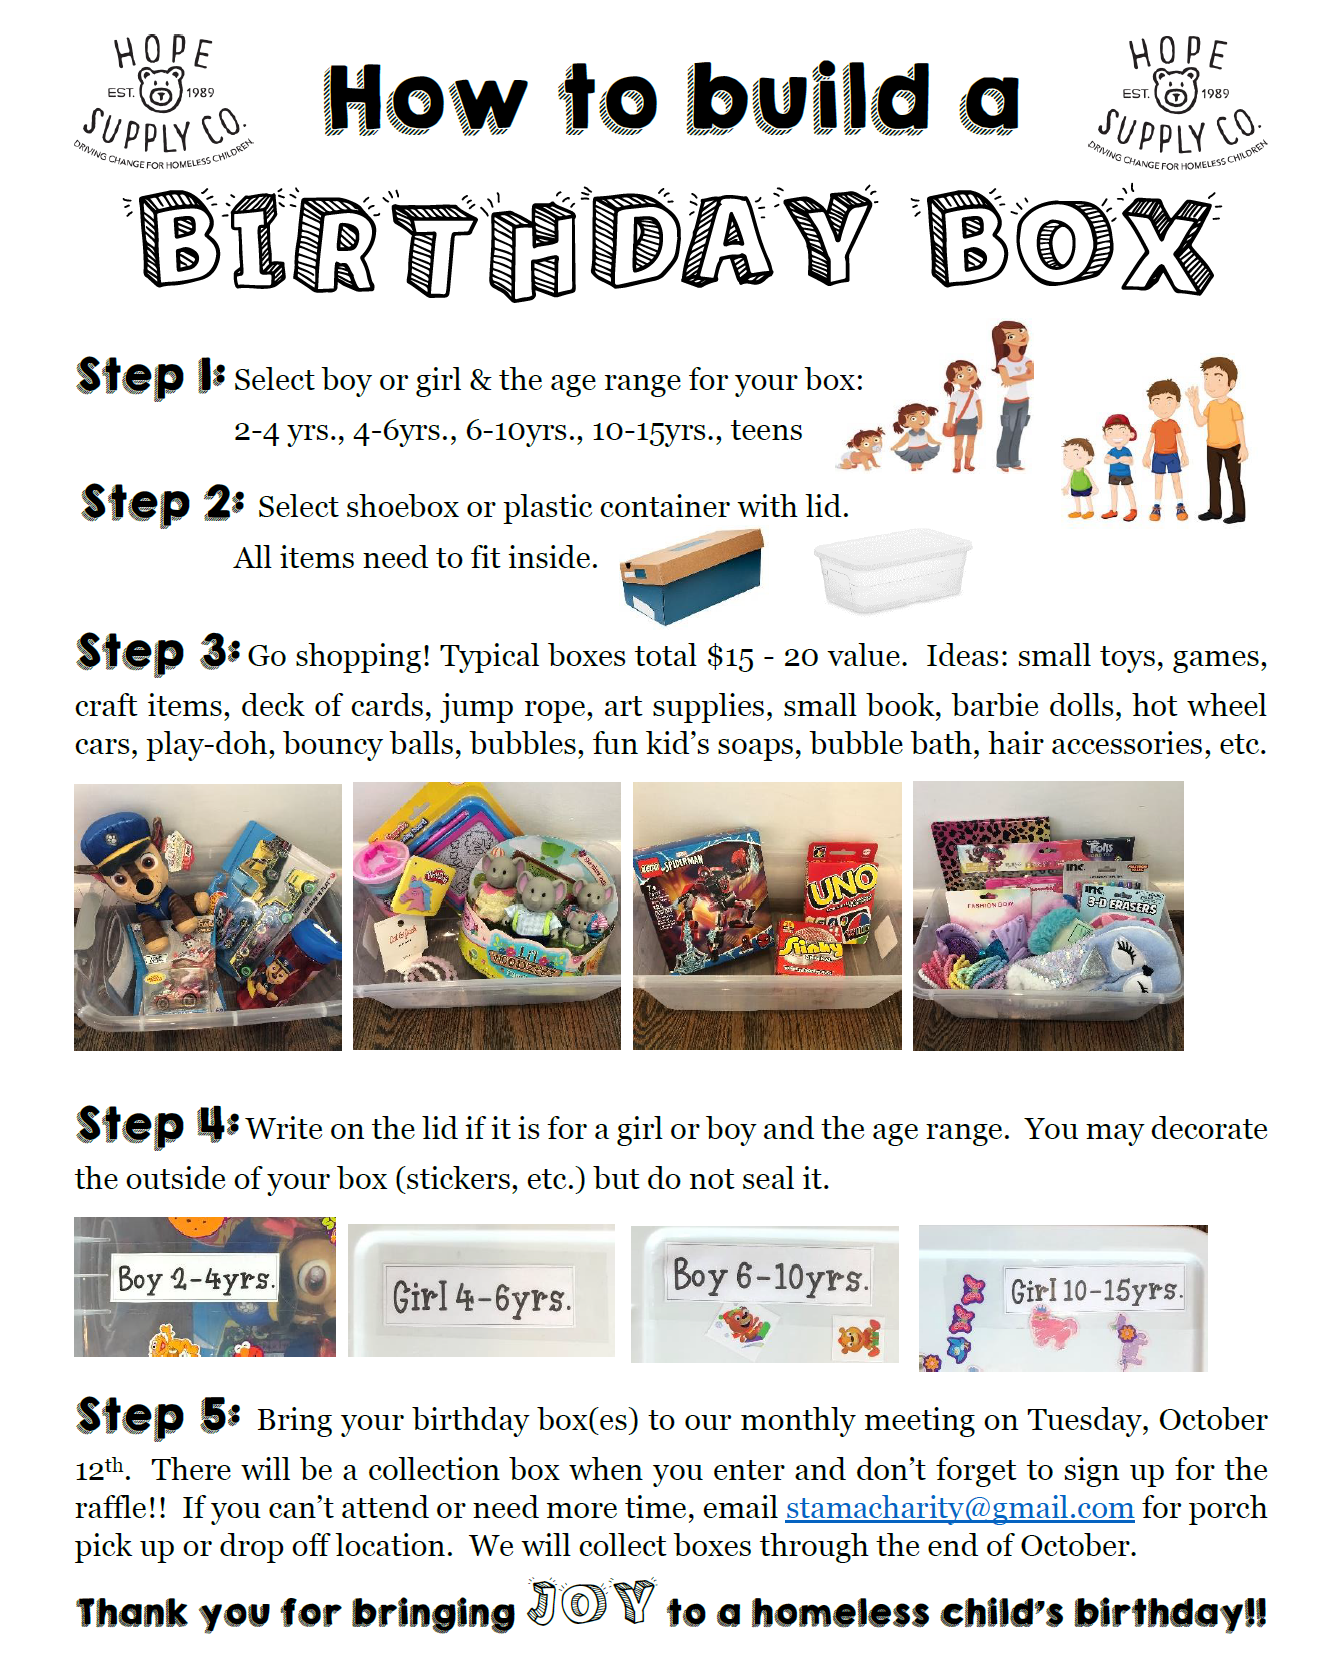 Instructions on how to build a Birthday Box for Children